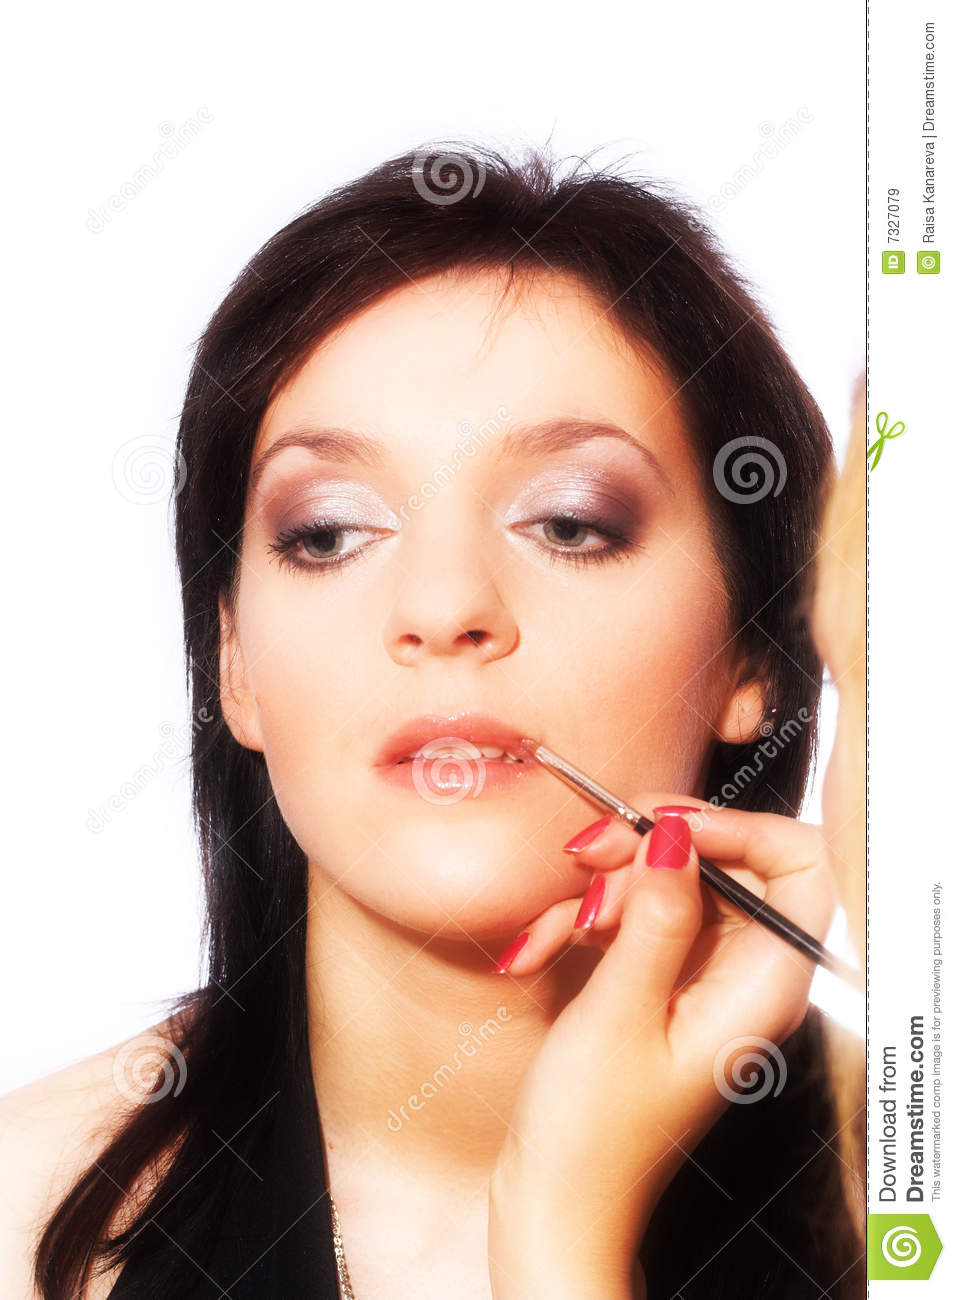 Makeup Artist At Work Royalty Free Stock Images - Image: 7327079